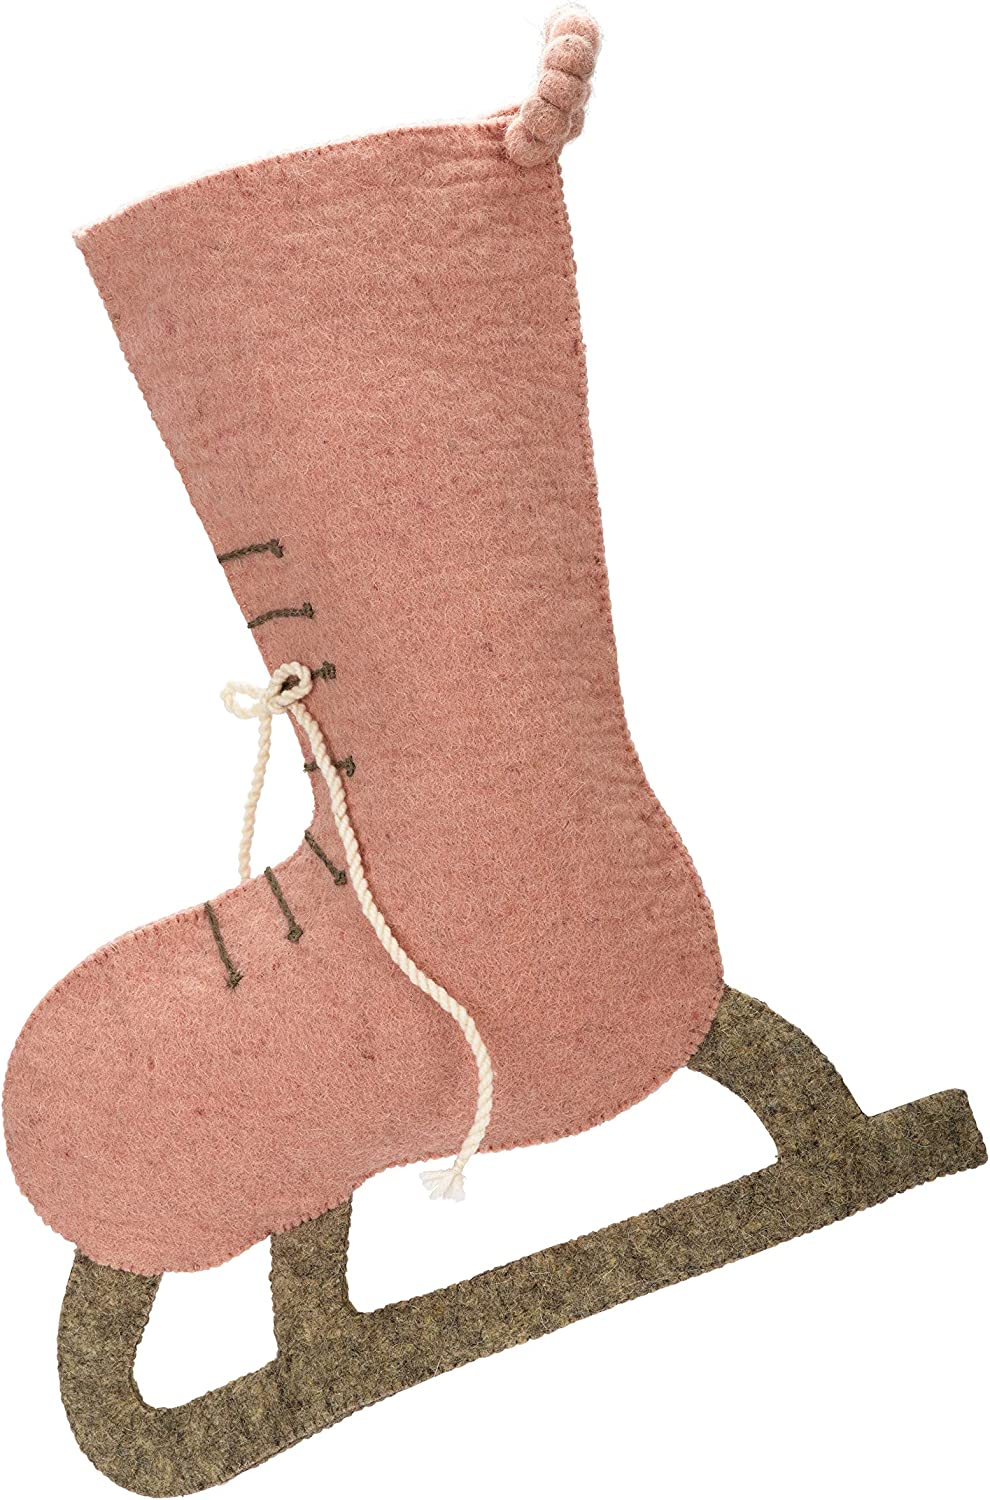 ARCADIA HOME Hand Felted Wool - Skate Christmas Stocking, Pink